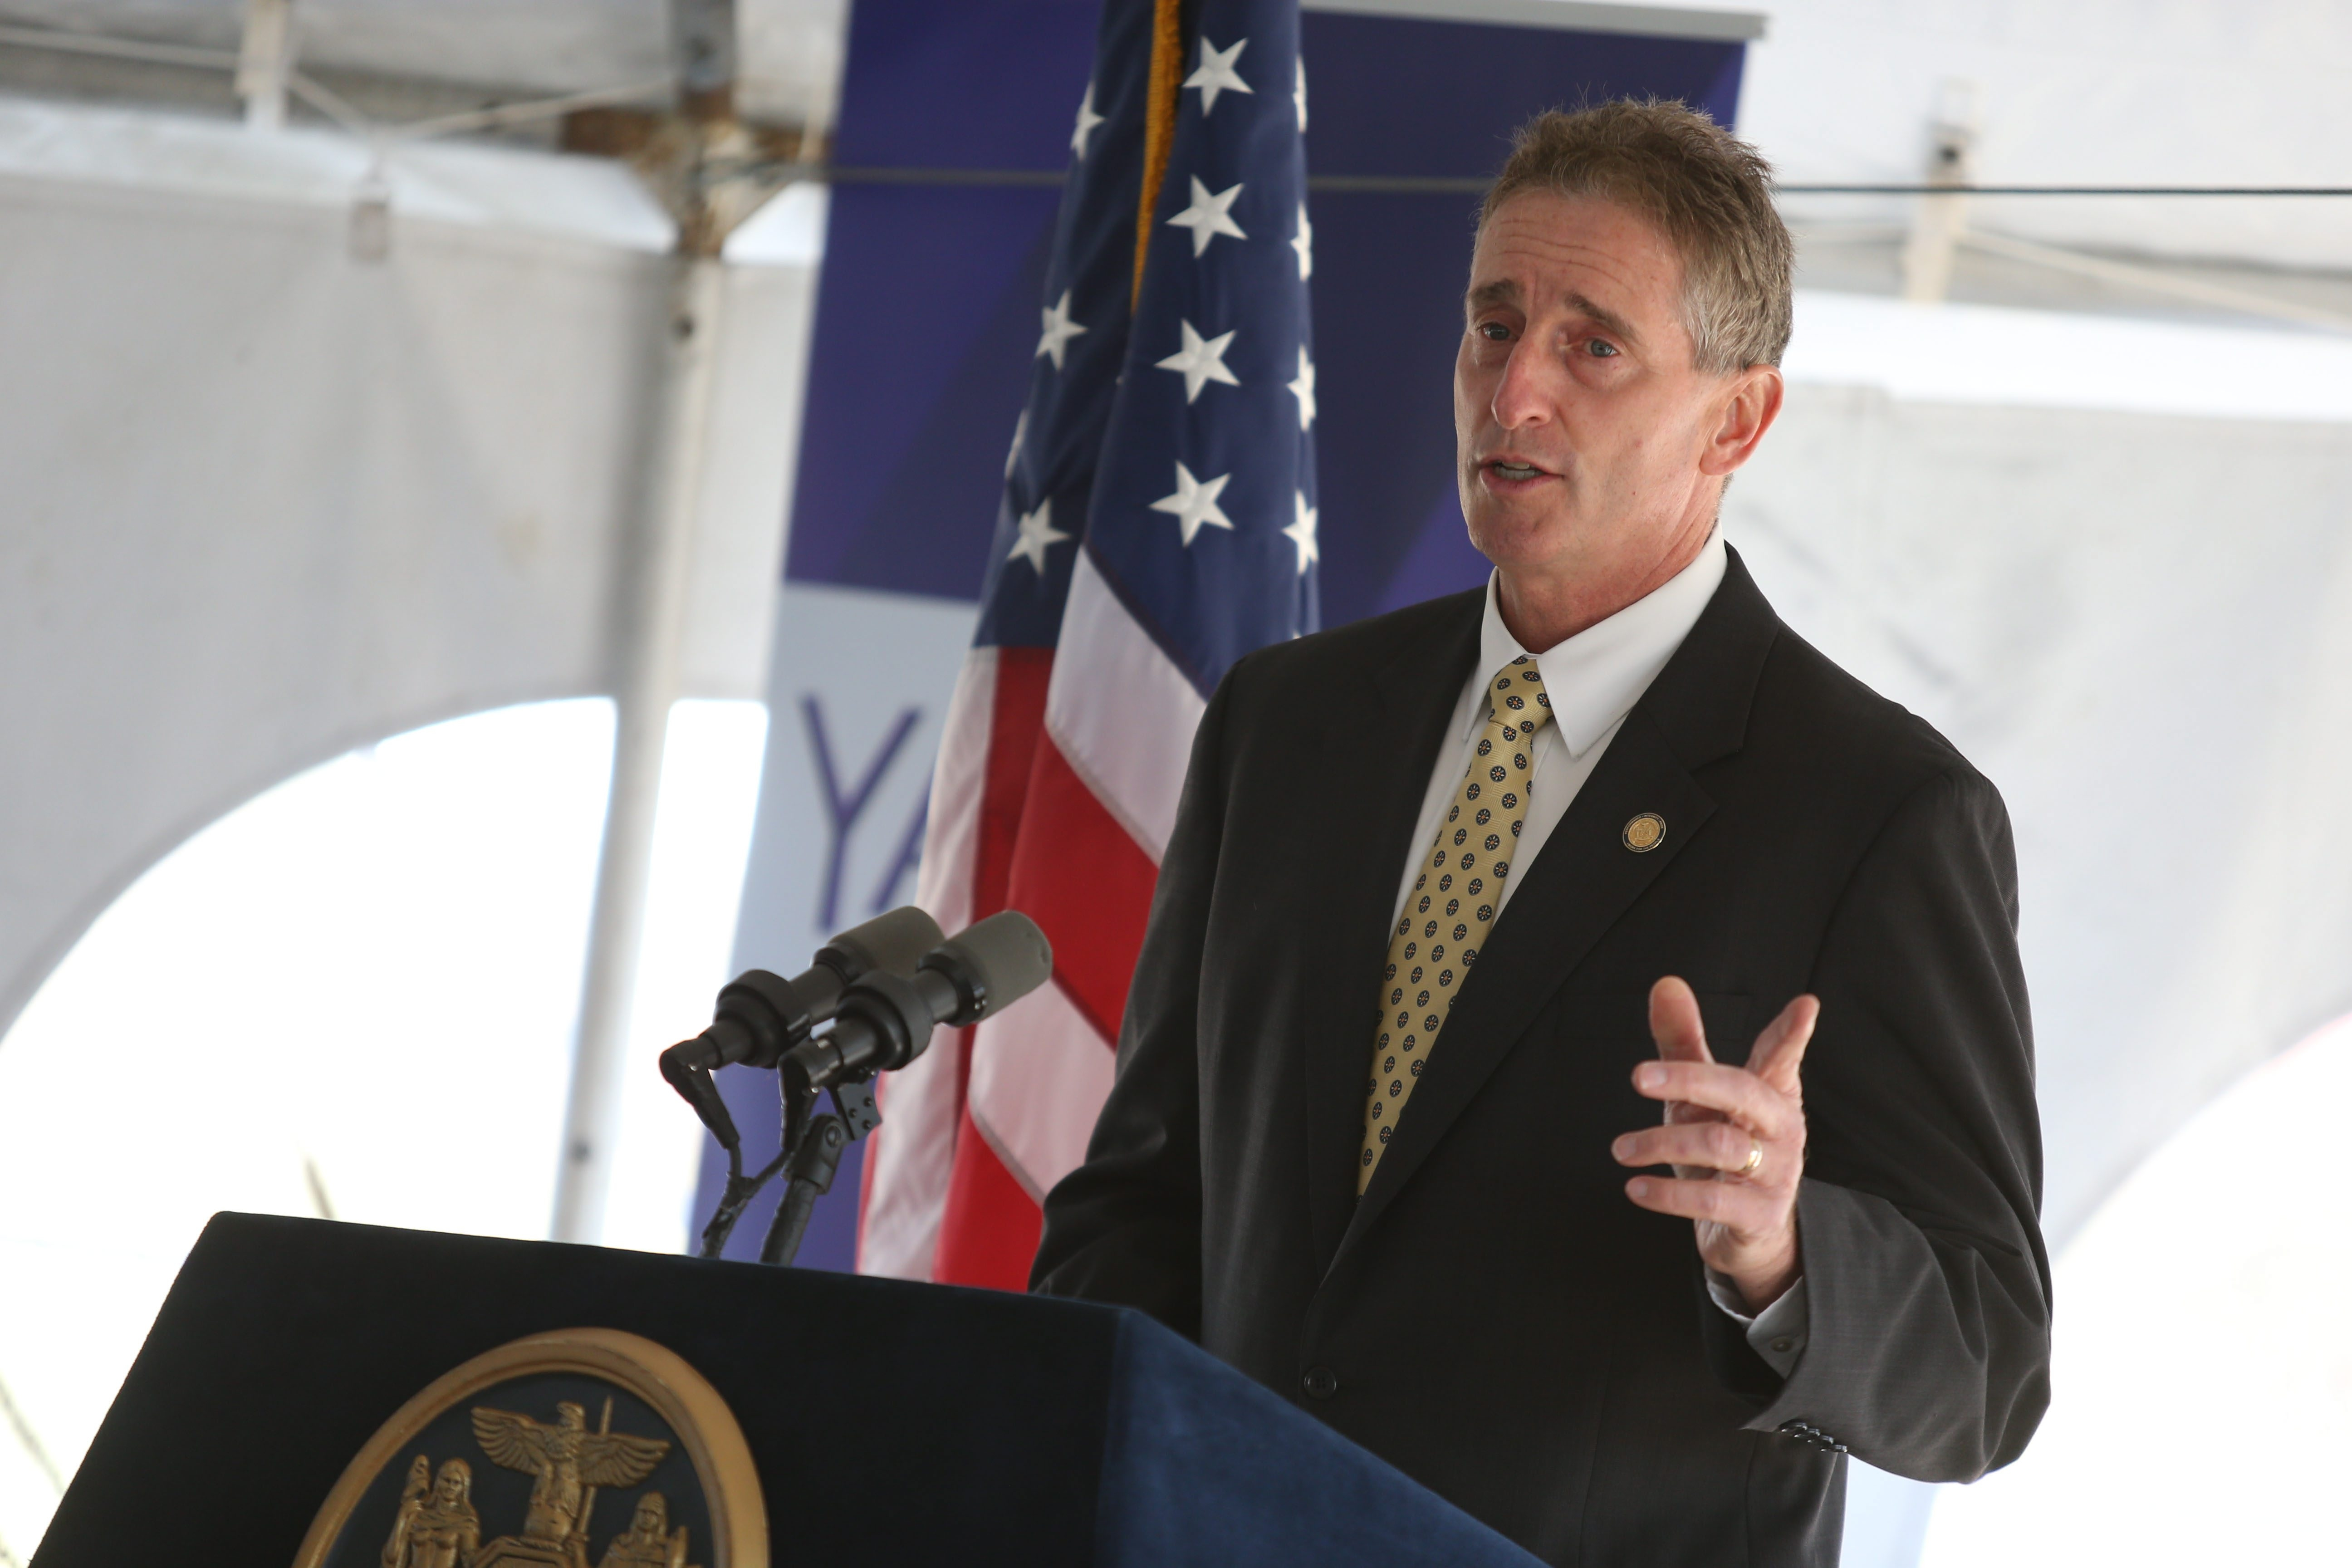 State Lt. Gov. Governor Robert J. Duffy has confirmed he won't be on the ticket with Gov. Cuomo this November, saying job has taken its toll on him. In this file photo, he speaks at a groundbreaking ceremony for the new Yahoo expansion in Lockport last fall.  (Charles Lewis/Buffalo News file photo)